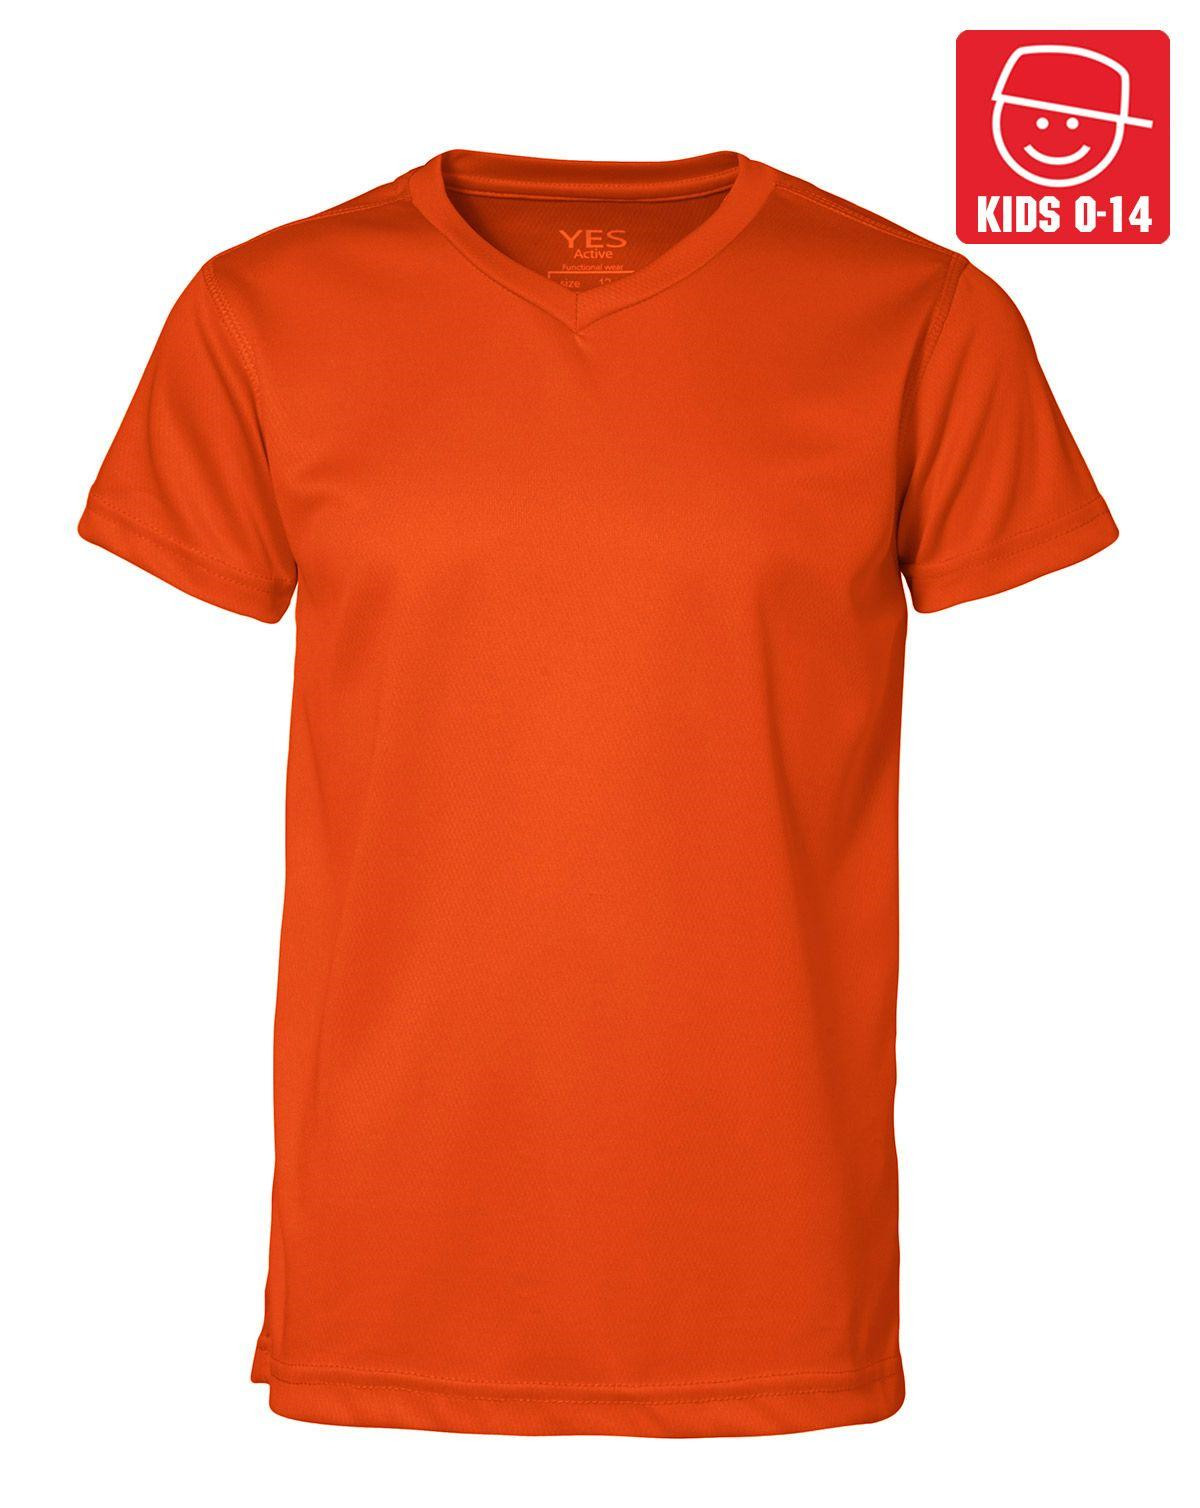 Image of   ID YES Svedtransporterende T-shirt til Børn (Orange, 128)